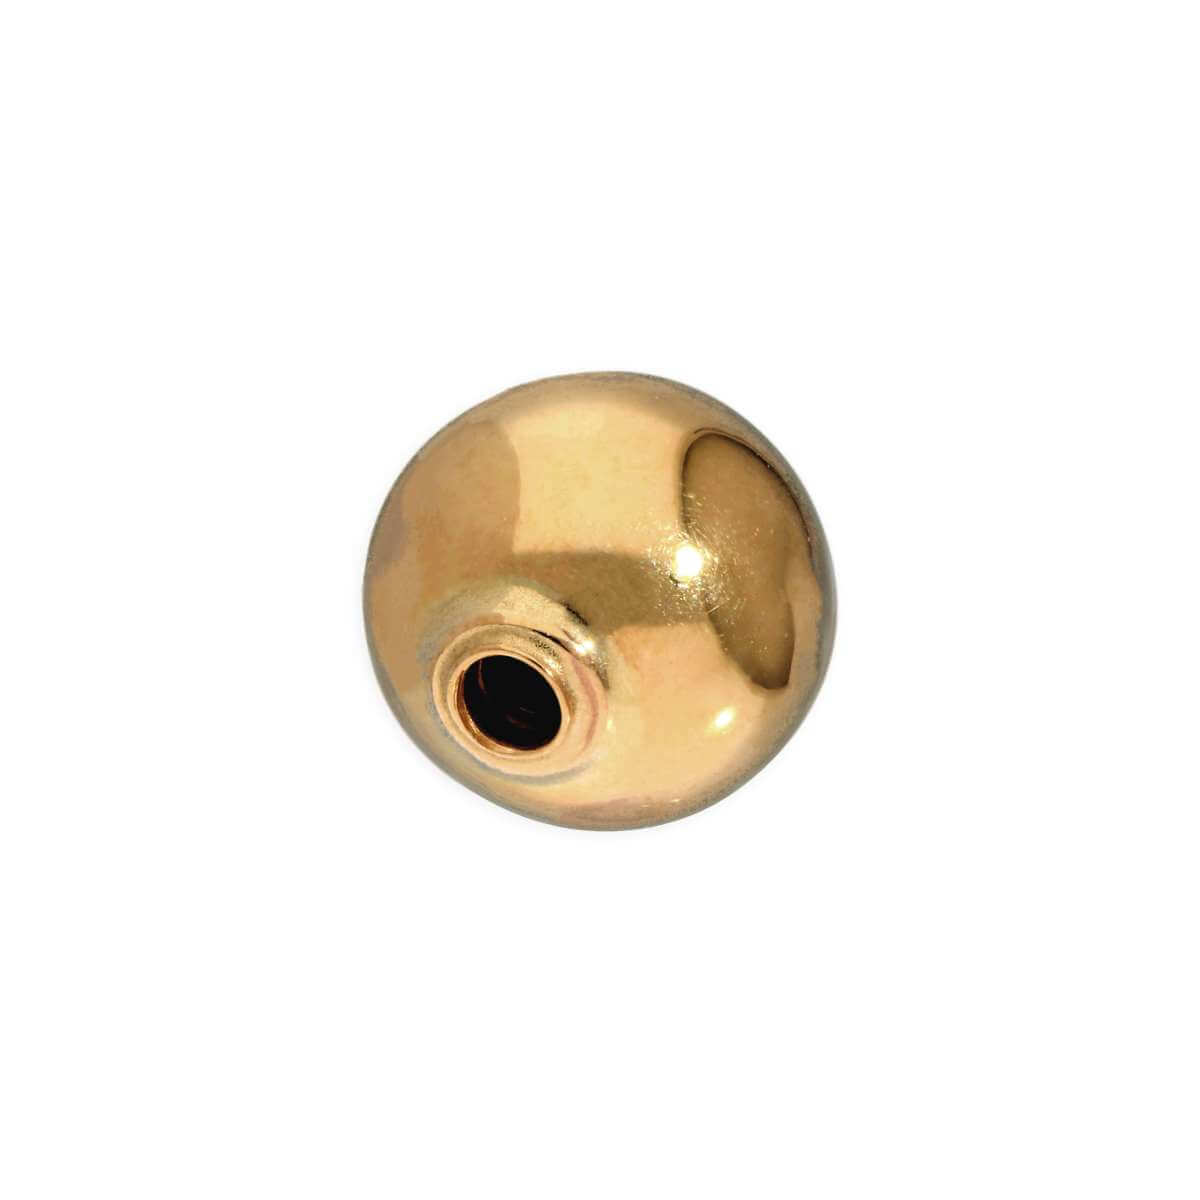 9ct Gold 5mm Replacement Belly Bar Ball Fastening